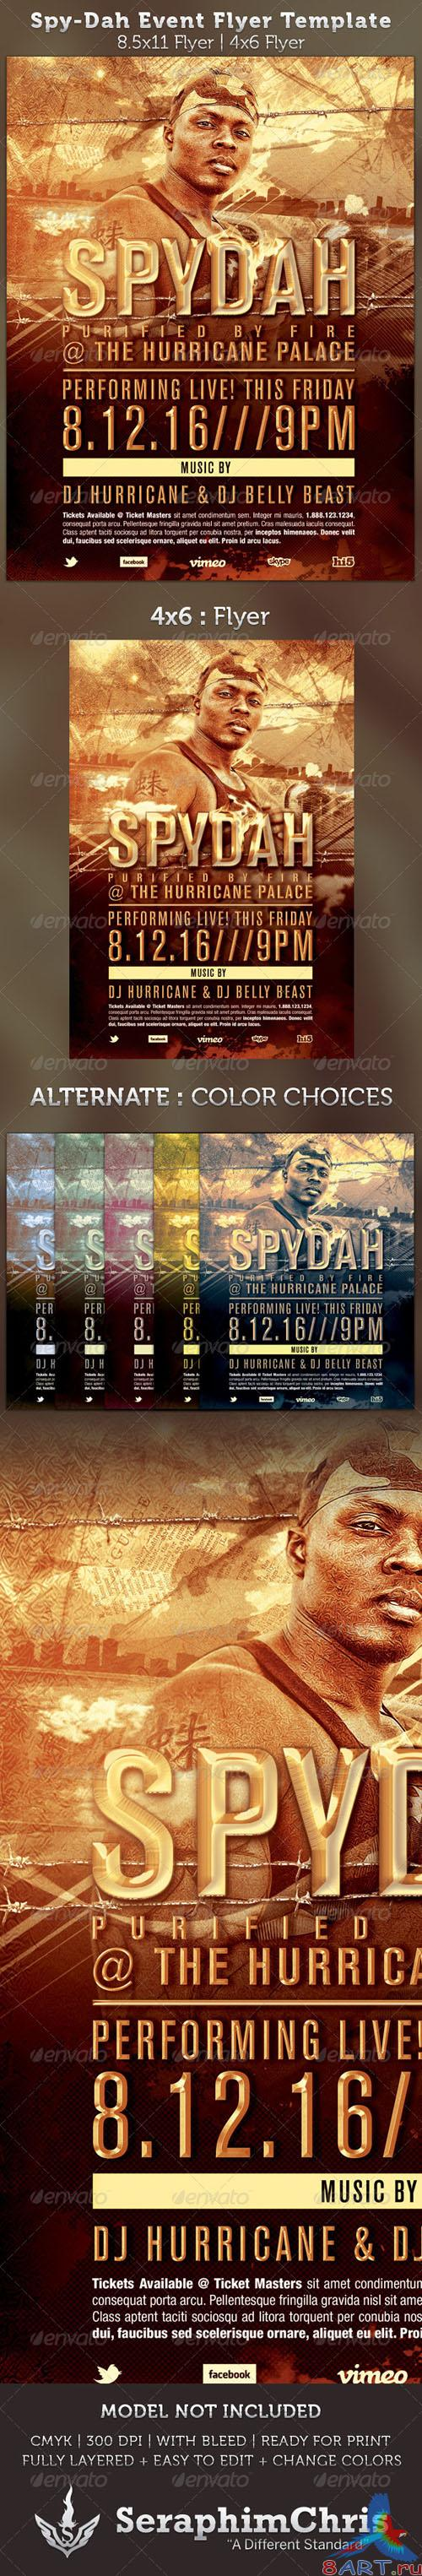 GraphicRiver - Spy-dah: Music Event Flyer Template 2561548